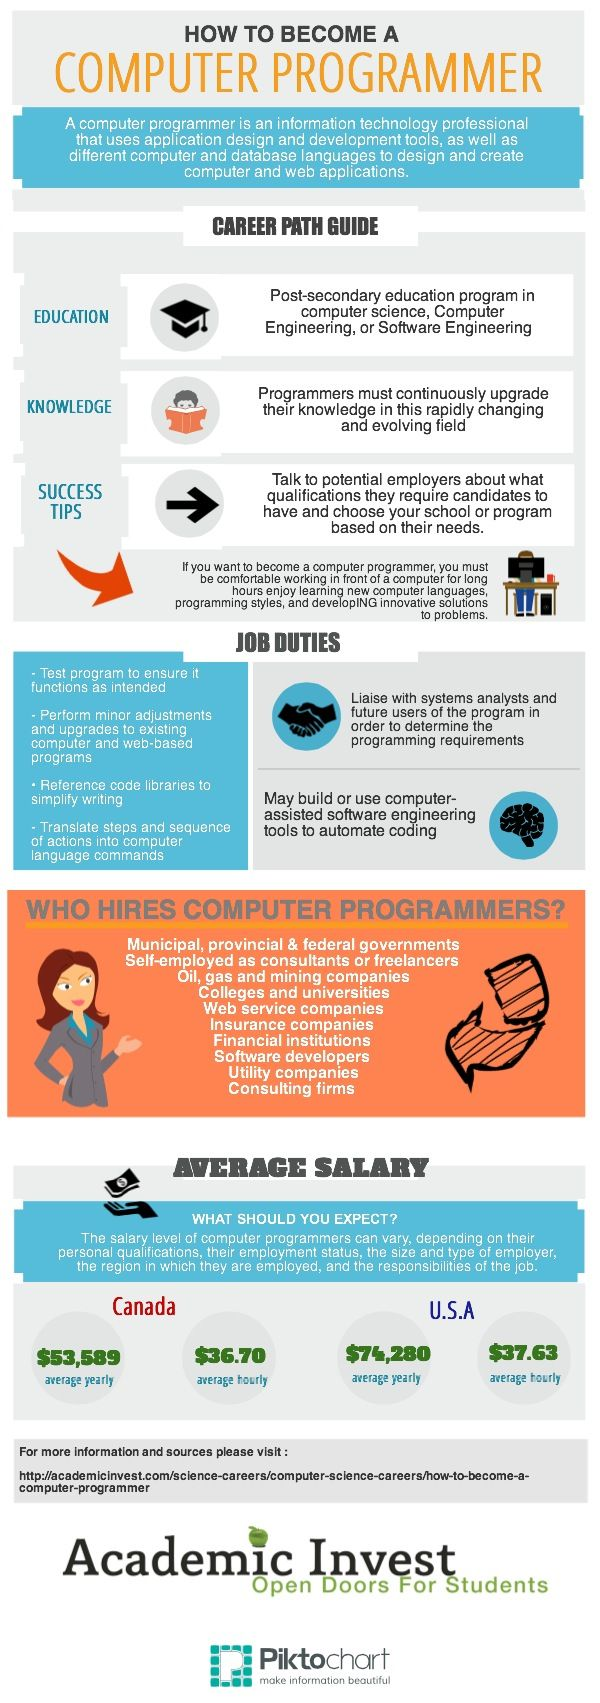 How to Become a Computer Programmer http://academicinvest.com/science-careers/computer-science-careers/how-to-become-a-computer-programmer